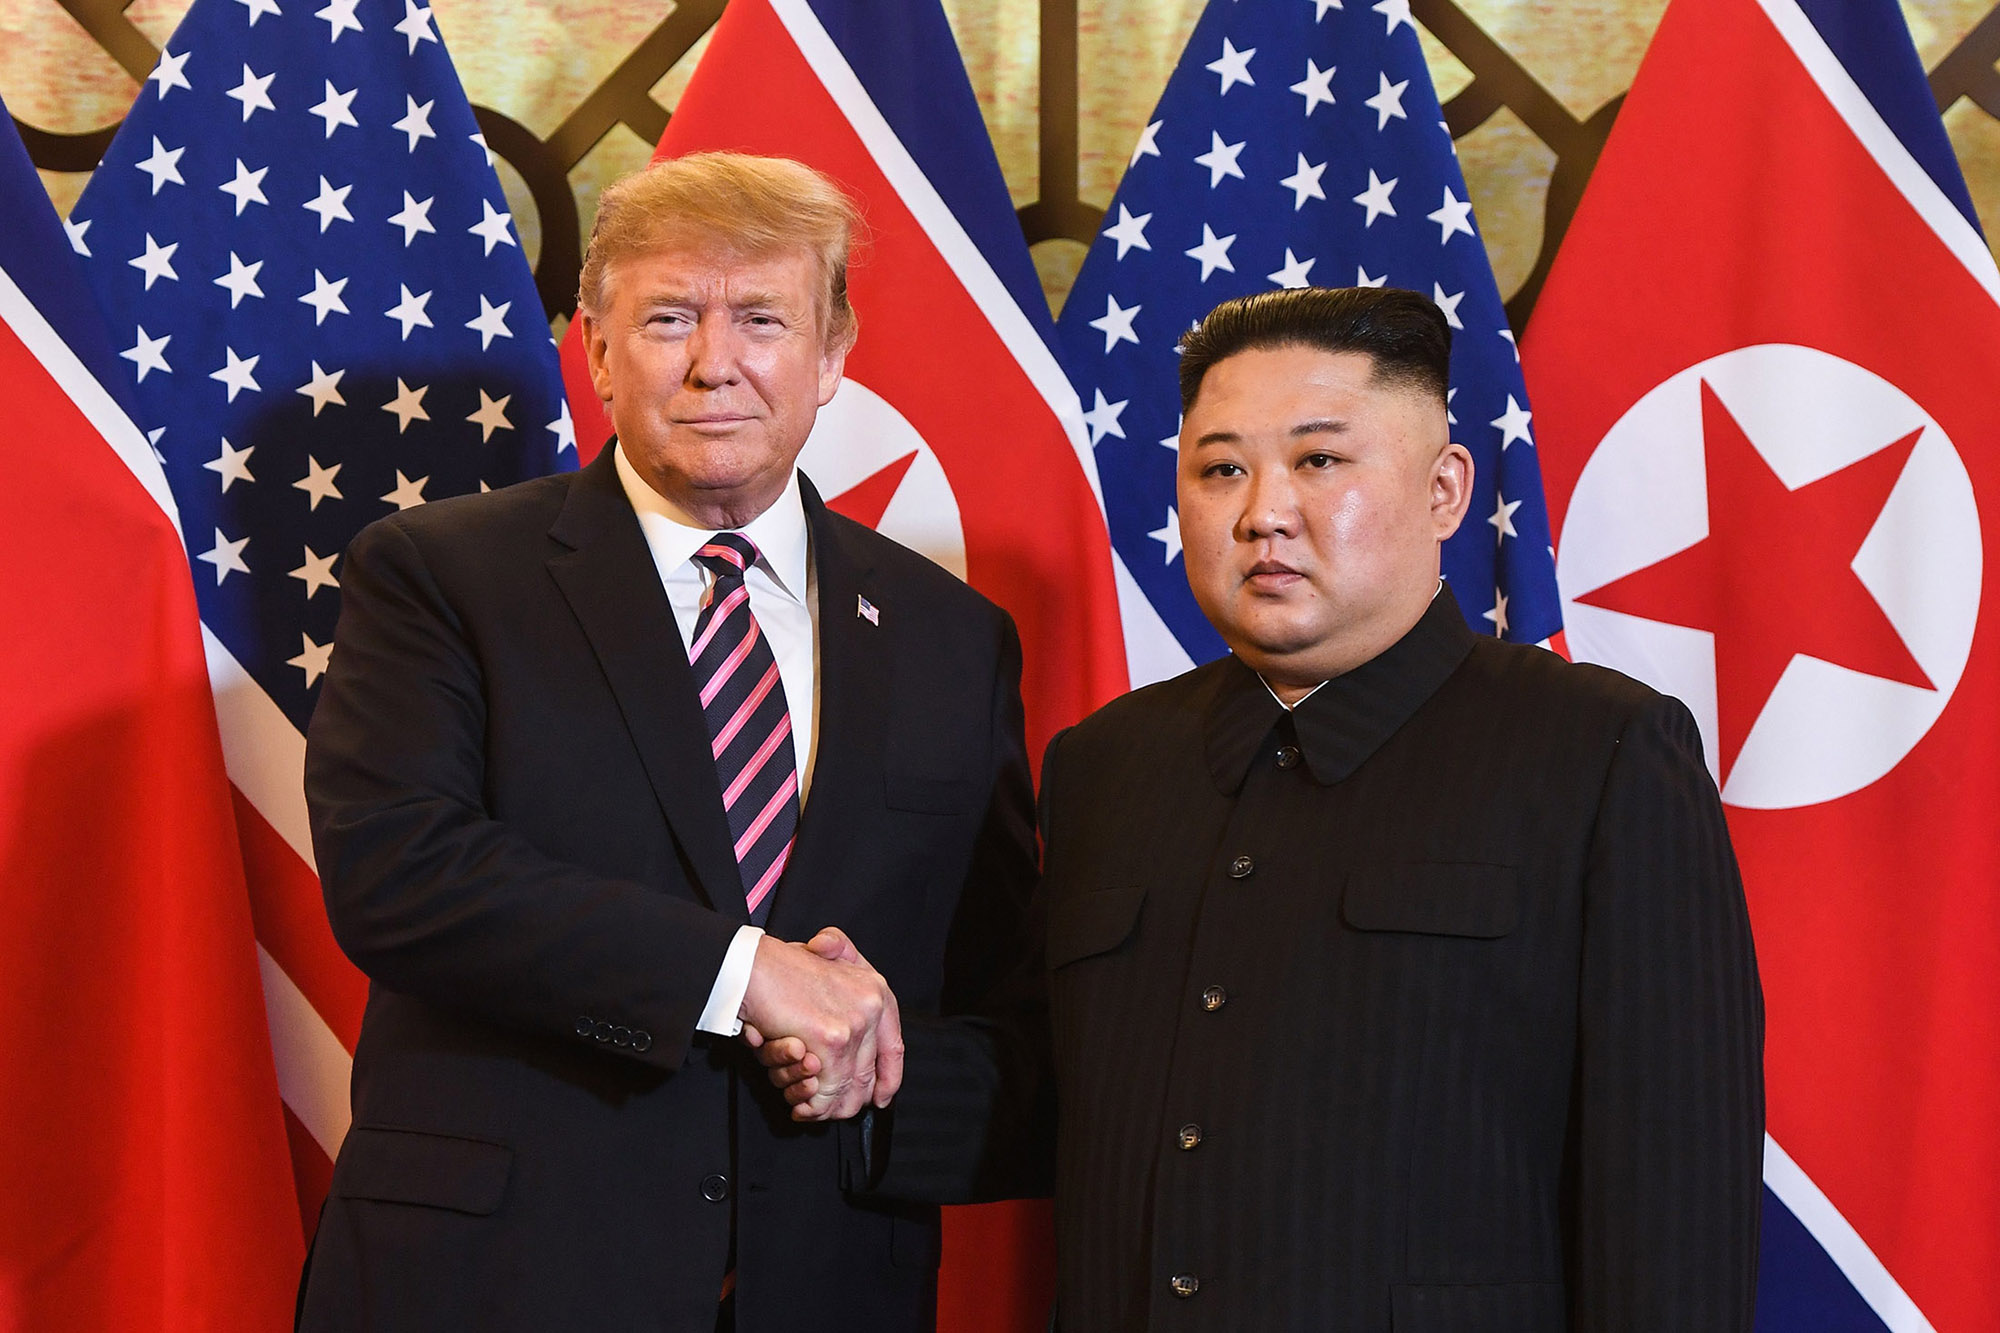 US President Donald Trump shakes hands with North Korea's leader Kim Jong Un before a meeting at the Sofitel Legend Metropole hotel in Hanoi on February 27, 2019